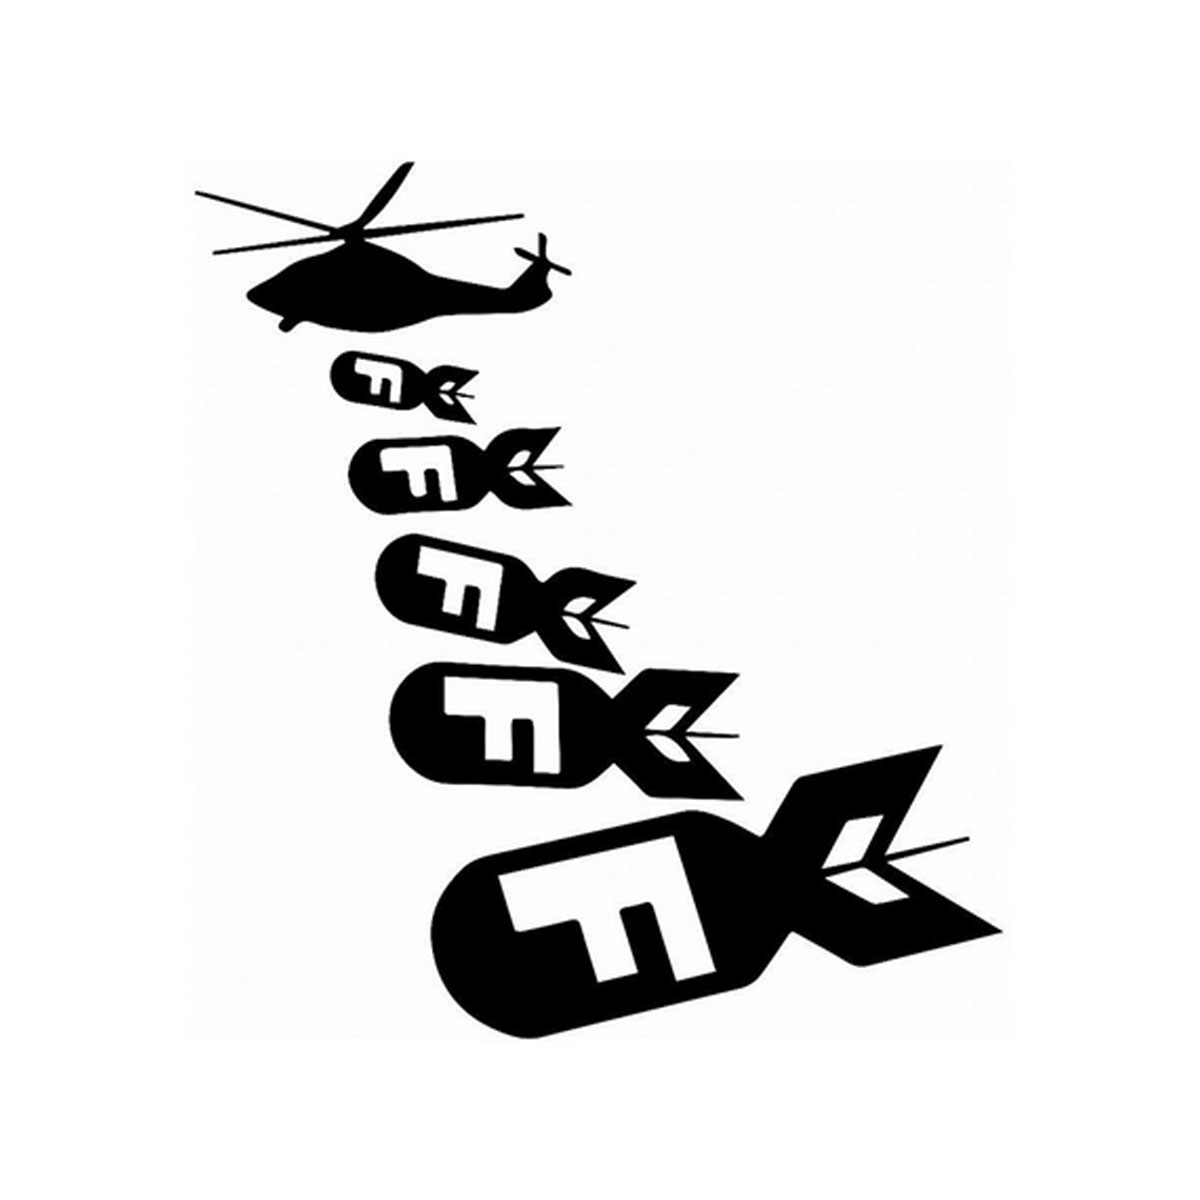 F Helicopter Car Sticker For Laptop Truck Window Wall Home Glass Door Bumper Auto Suv Black